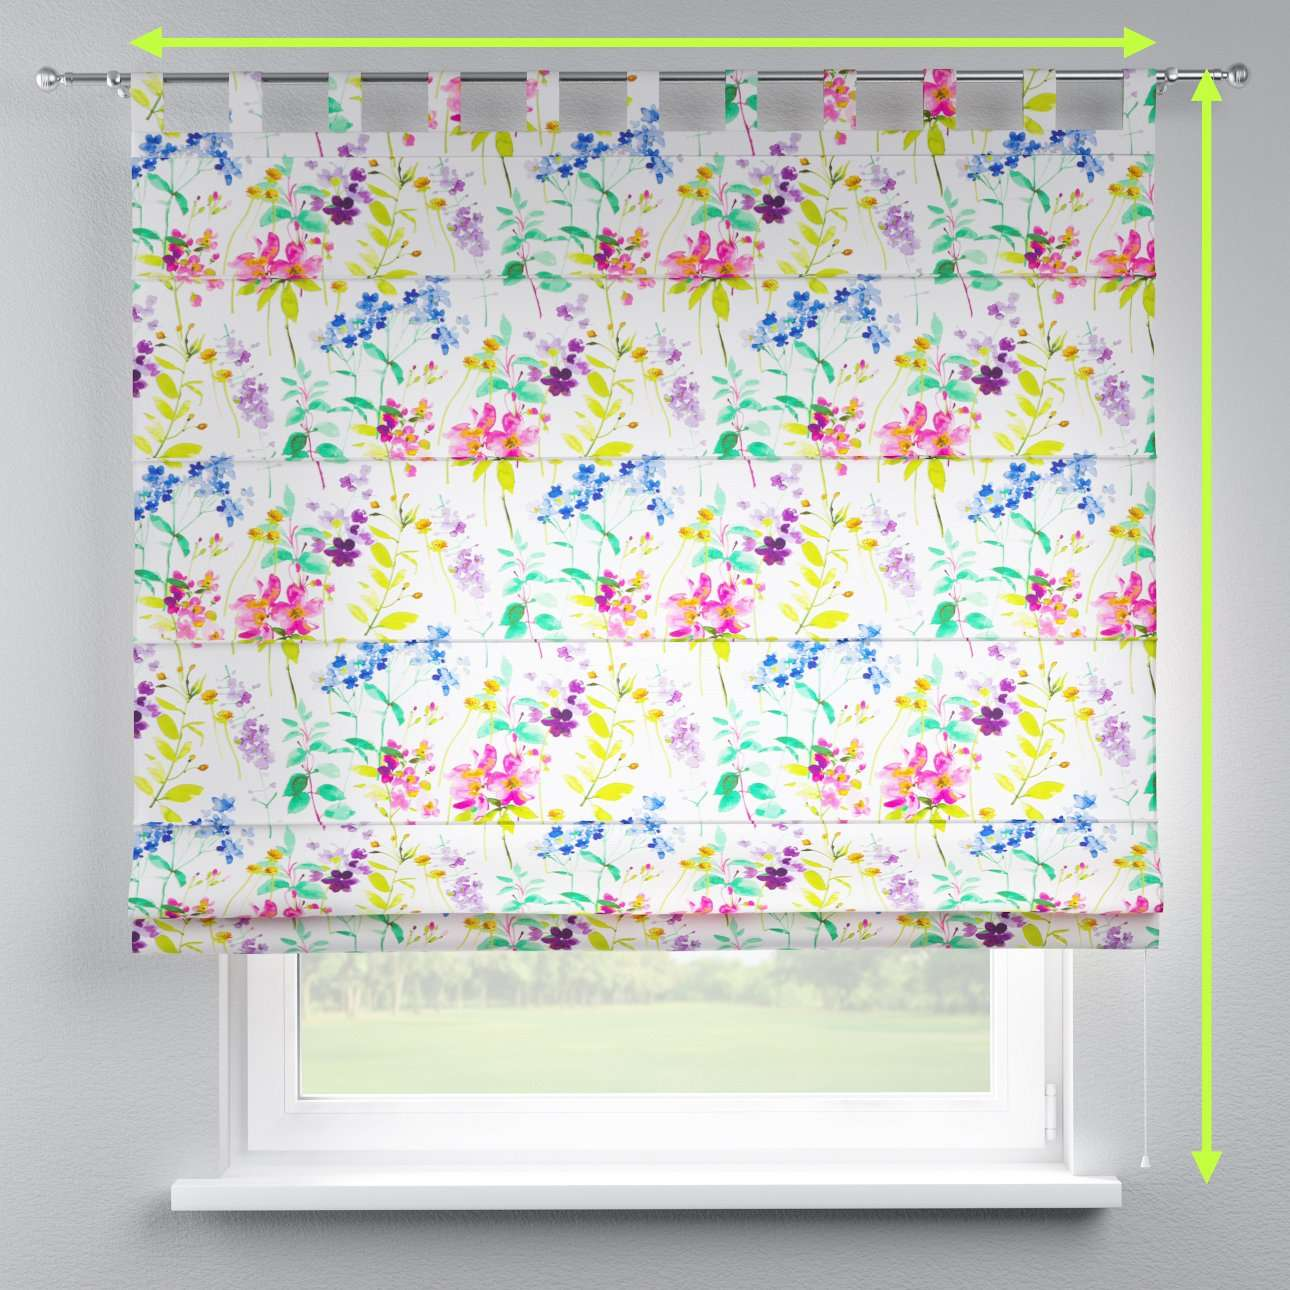 Verona tab top roman blind in collection Monet, fabric: 140-06